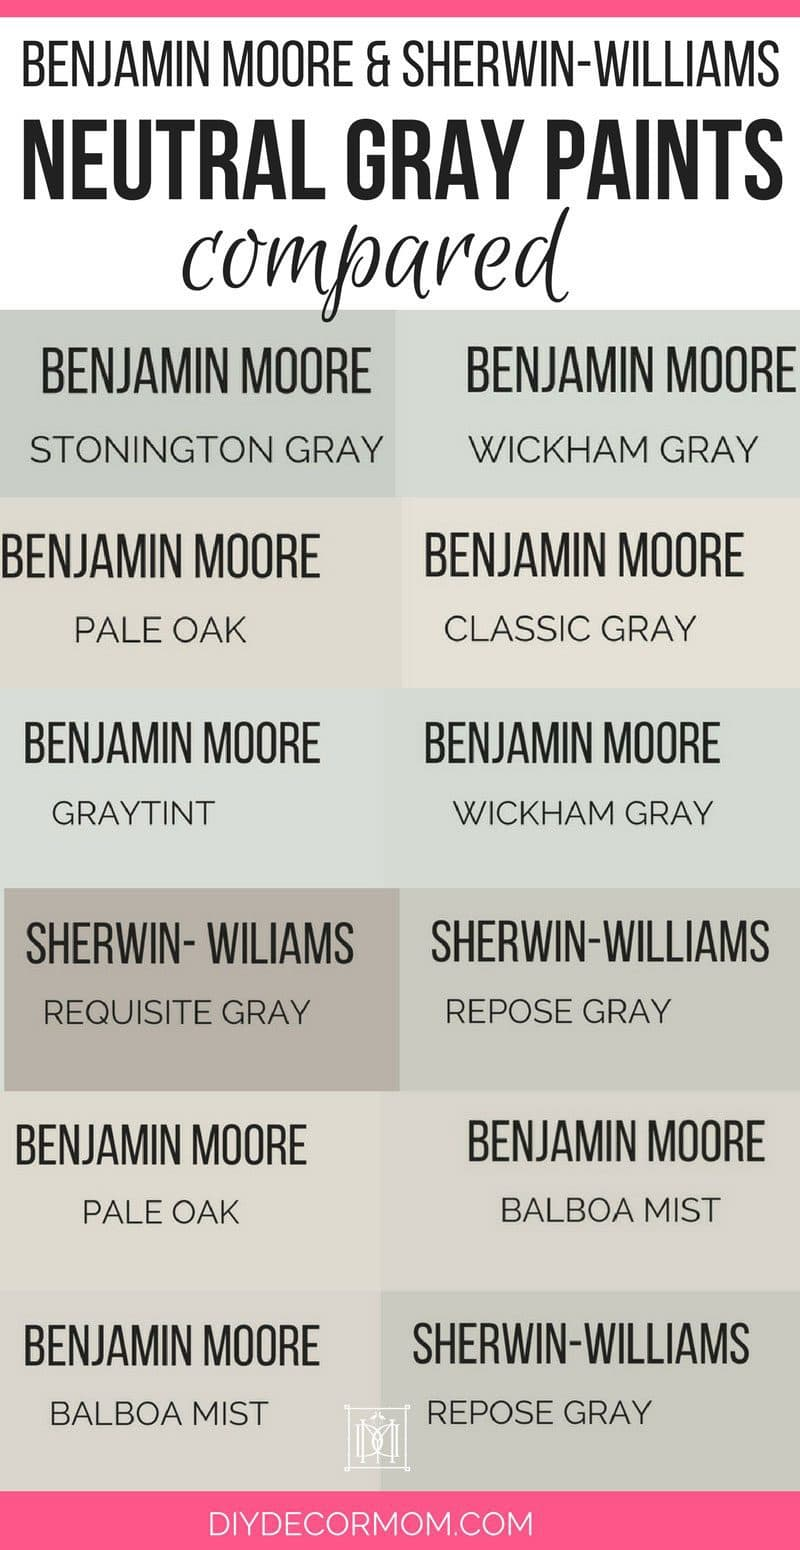 Brilliant Benjamin Moore Sherwin Williams Light Paint Colorswith Neutral Paint Swatches Paint Paints Benjamin Moore Vs Sherwin Williams Colors Benjamin Moore Vs Sherwin Williams Deck Stain Comparison houzz-03 Benjamin Moore Vs Sherwin Williams